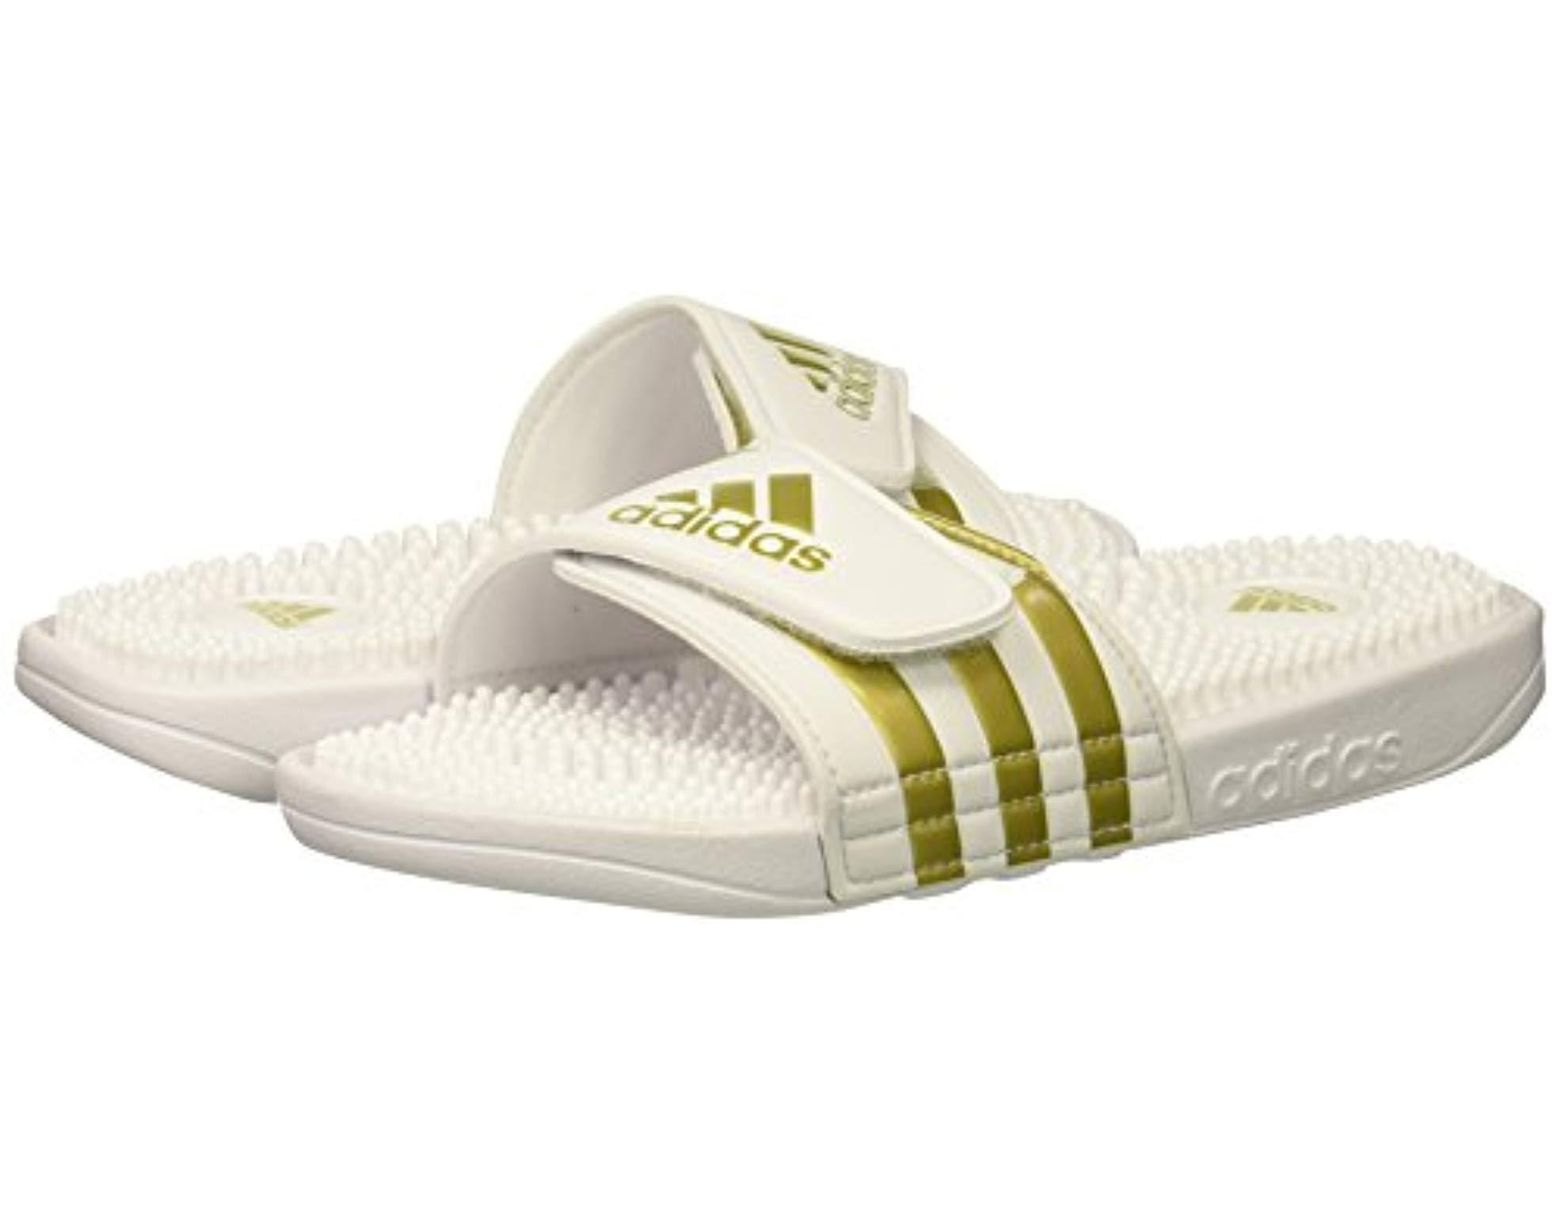 58662aa8a adidas Adissage Slides in White for Men - Lyst